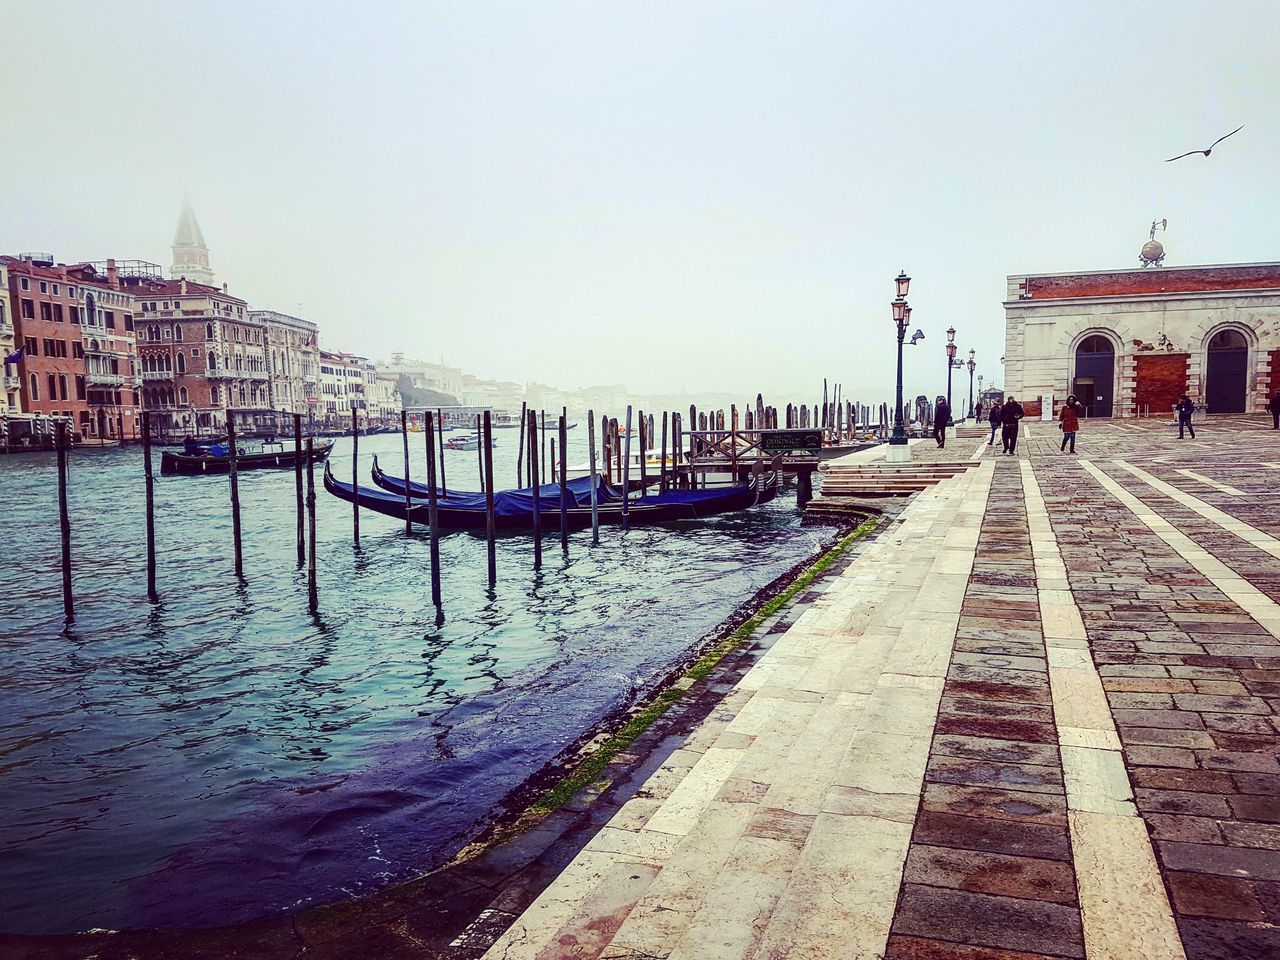 Misty Venice, Italy. Travel Destinations Outdoors Gondola - Traditional Boat Tranquil Scene No People Day Nature Water Sky Venice Venice Italy Venice Carnival Venice Canals Venicelife Venice View Venice Gondola EyeEmNewHere Foggy Foggy Morning Foggy Landscape Foggy Day Foggy Weather